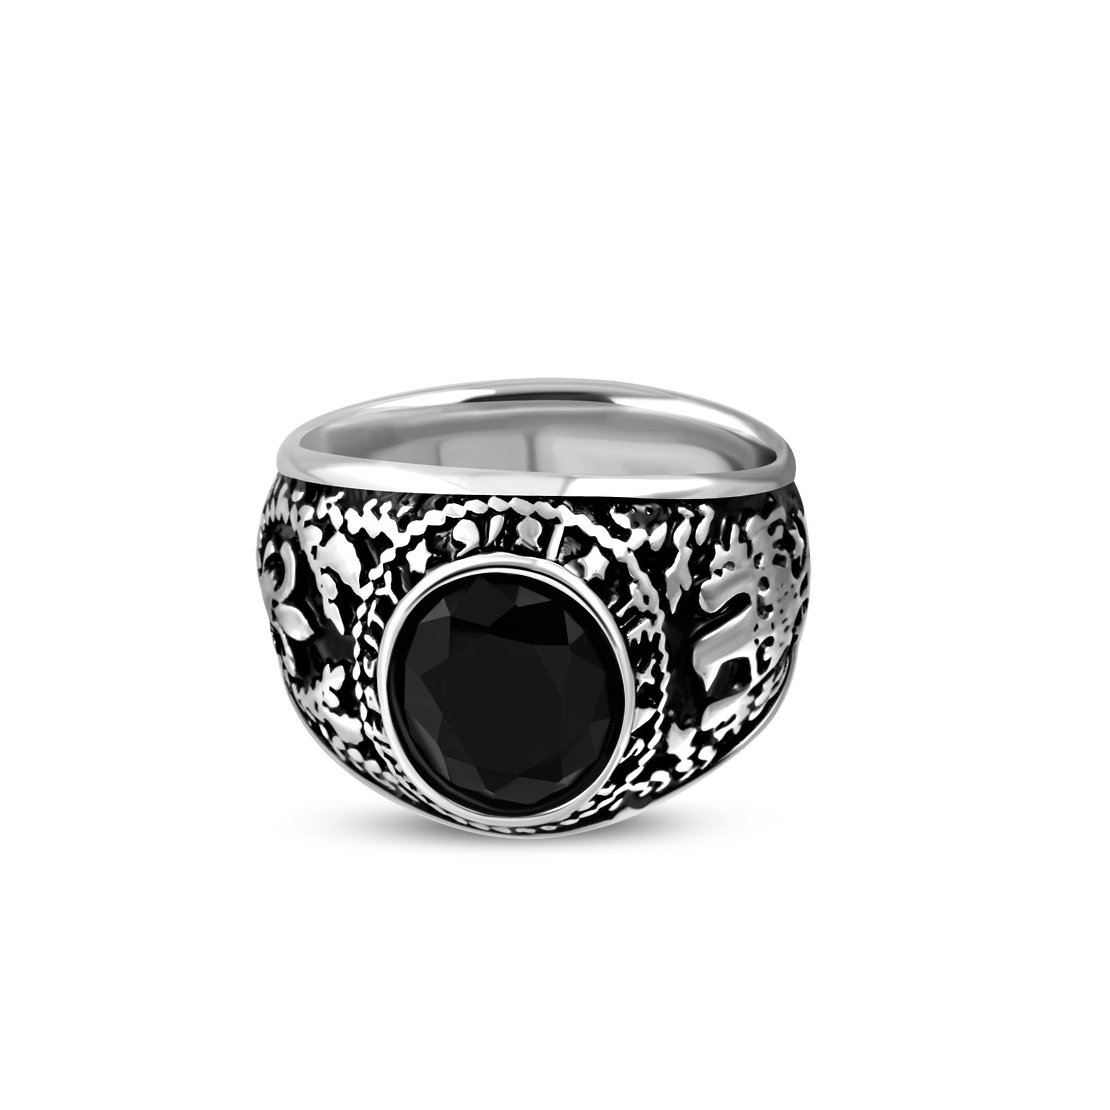 Stainless Steel 2 Color USA Bald Eagle Oval Biker Ring with Faceted Jet Black CZ